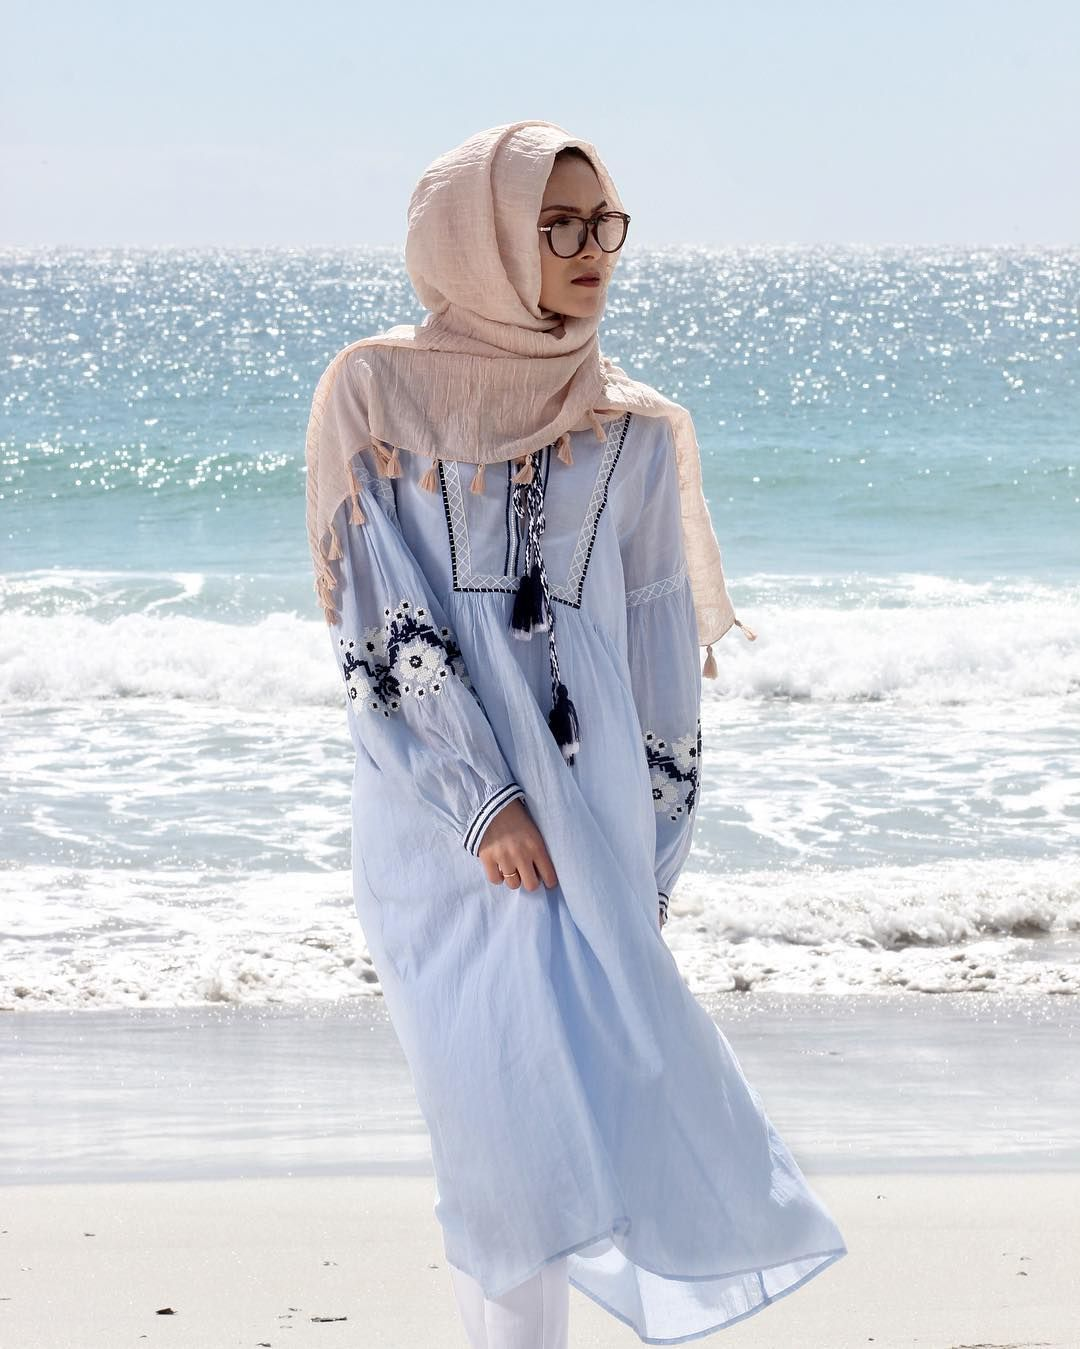 Hijab stylish online singapore recommend to wear in summer in 2019